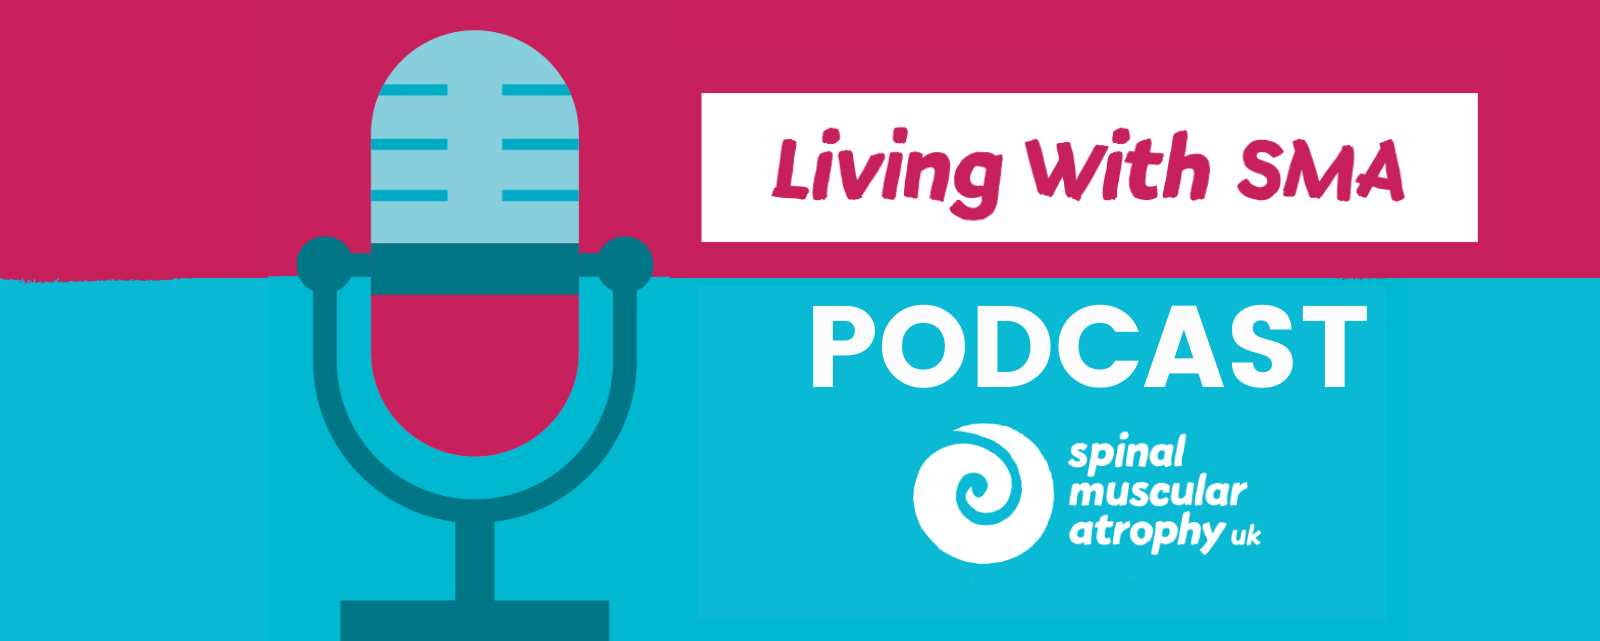 Living With SMA Podcast